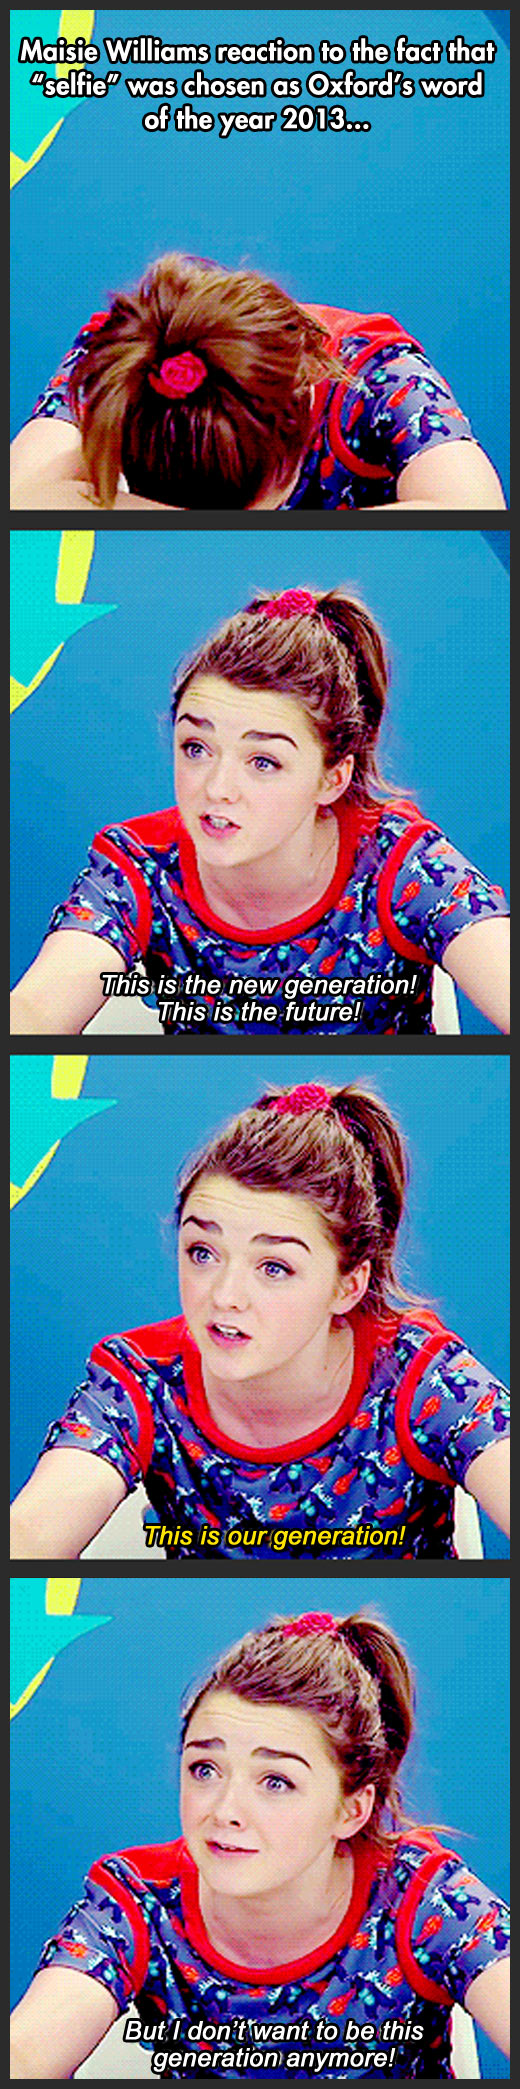 funny-picture-Maisie-Williams-reaction-selfie-word-2013